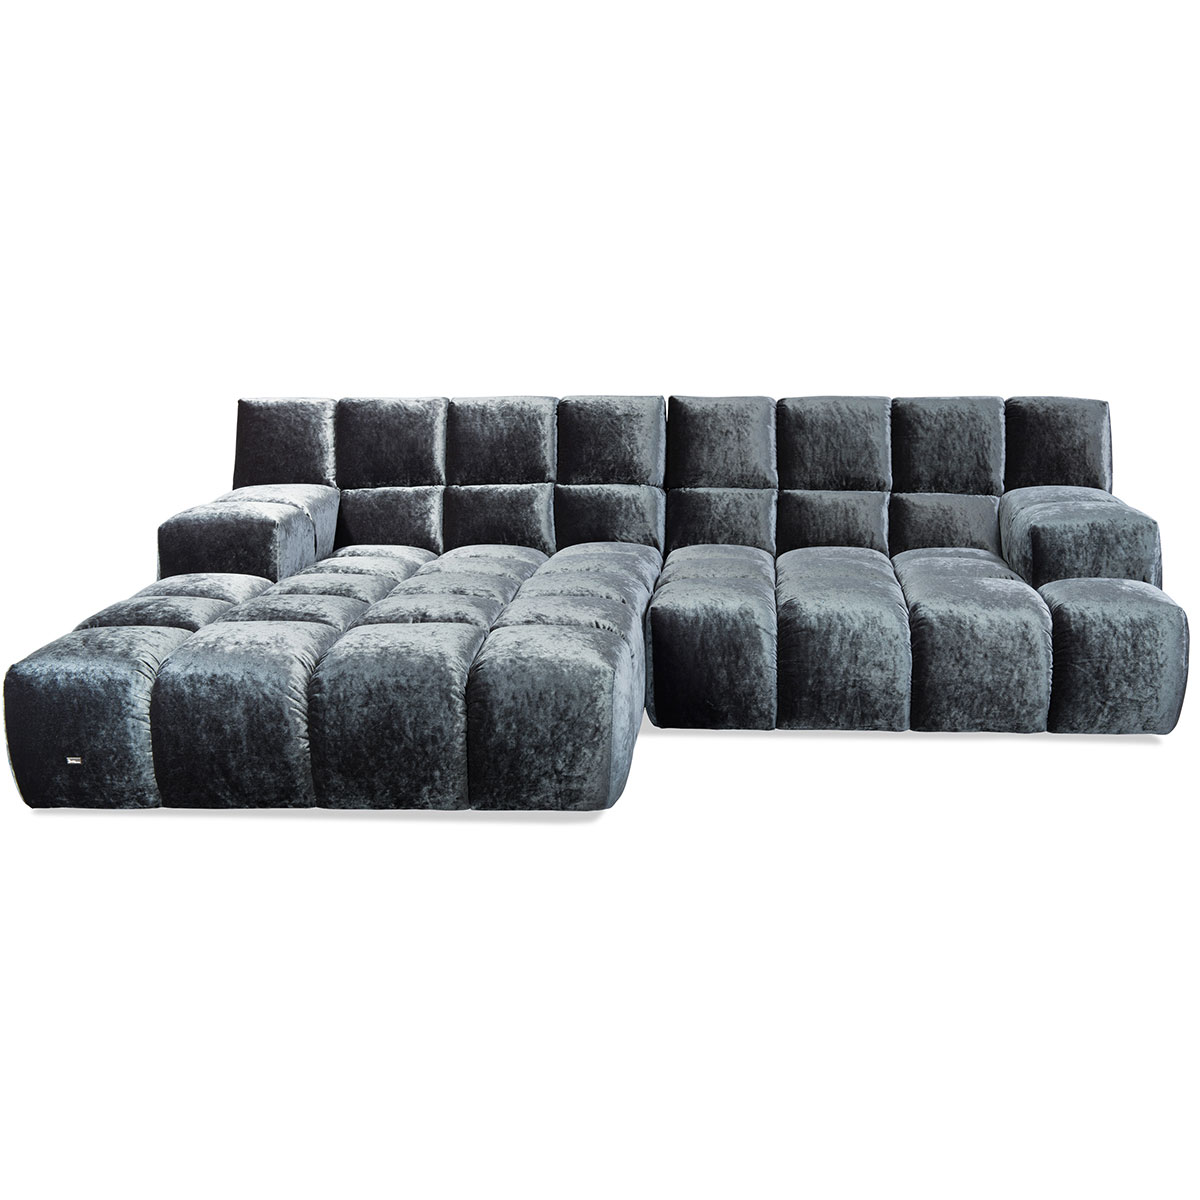 ocean 7 by bretz top angebote an bretz ocean 7 sofas ab. Black Bedroom Furniture Sets. Home Design Ideas